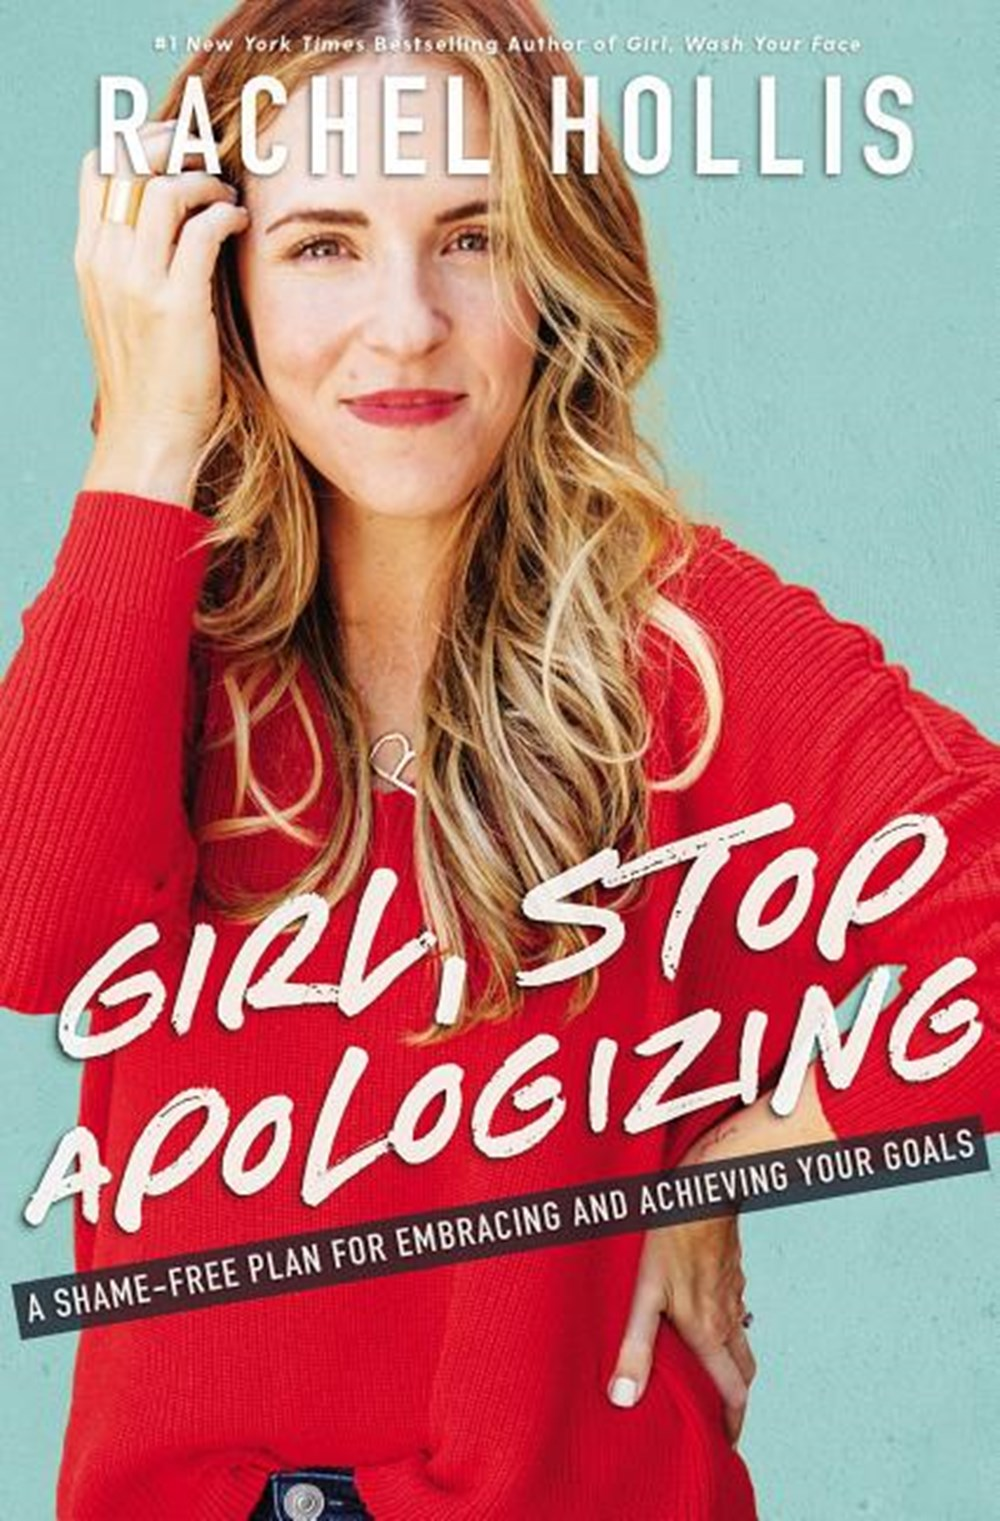 Girl, Stop Apologizing A Shame-Free Plan for Embracing and Achieving Your Goals